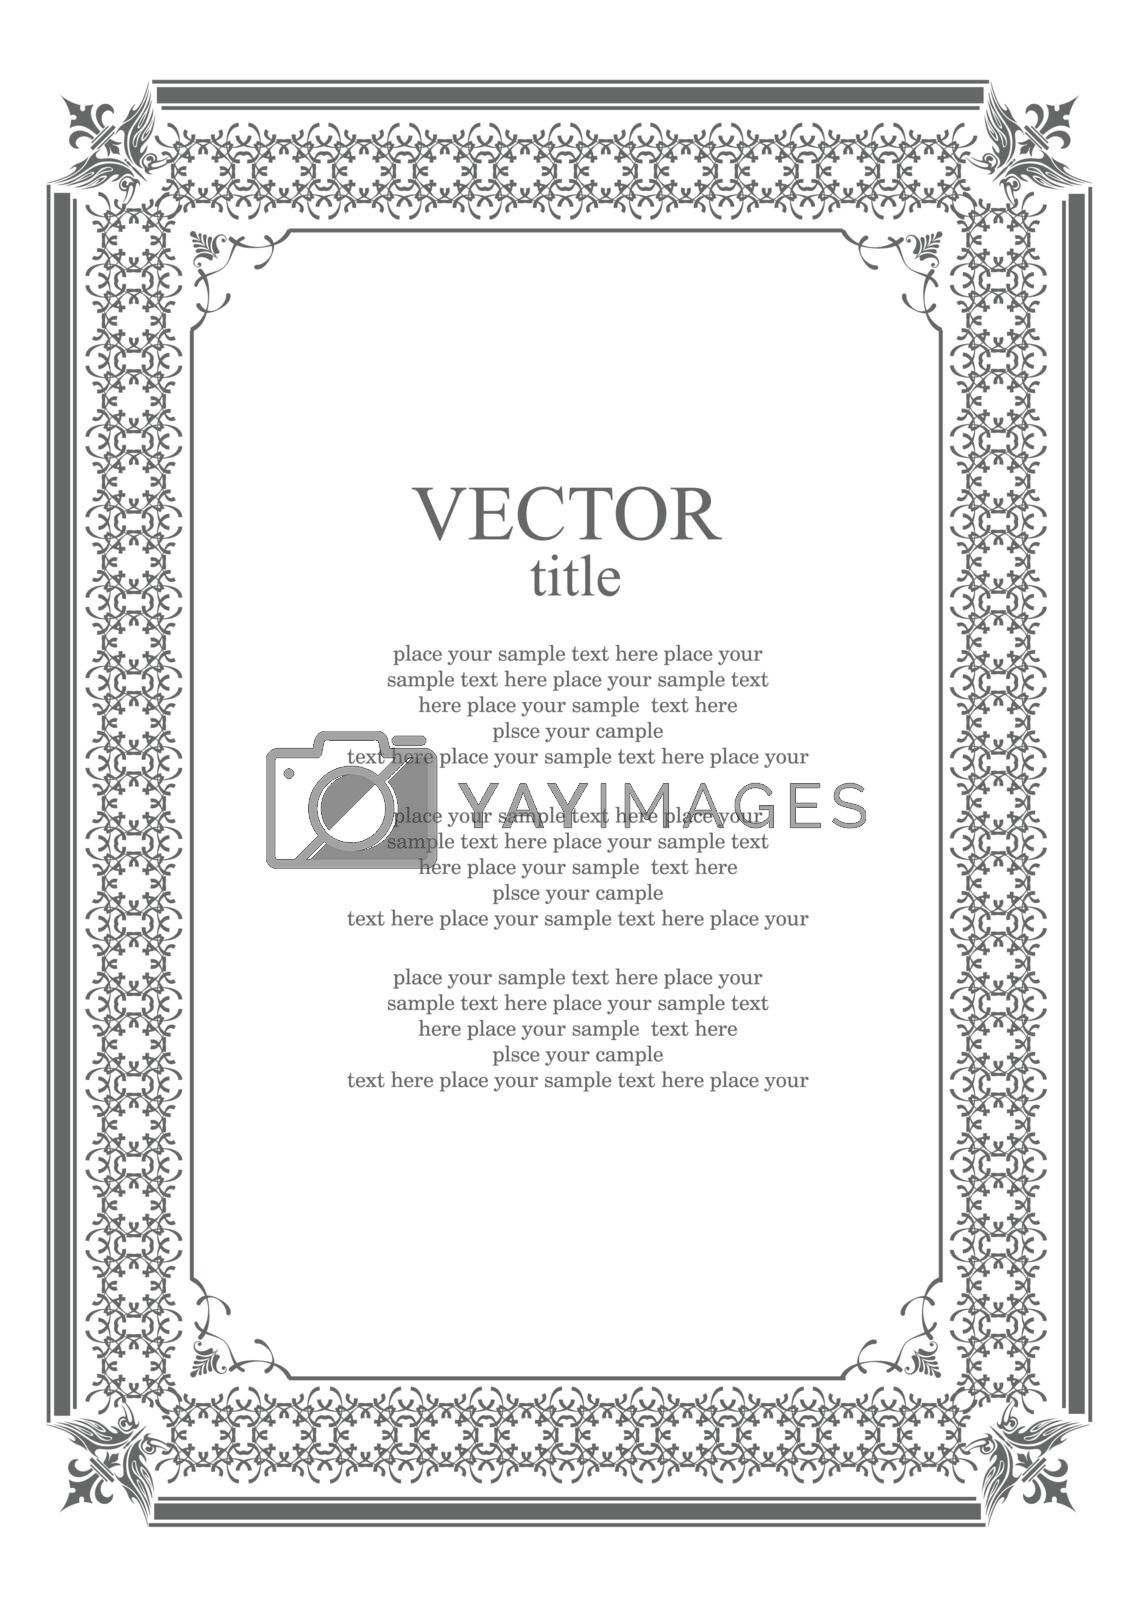 Royalty free image of Black ornament on white background. Can be used as invitation ca by leonido